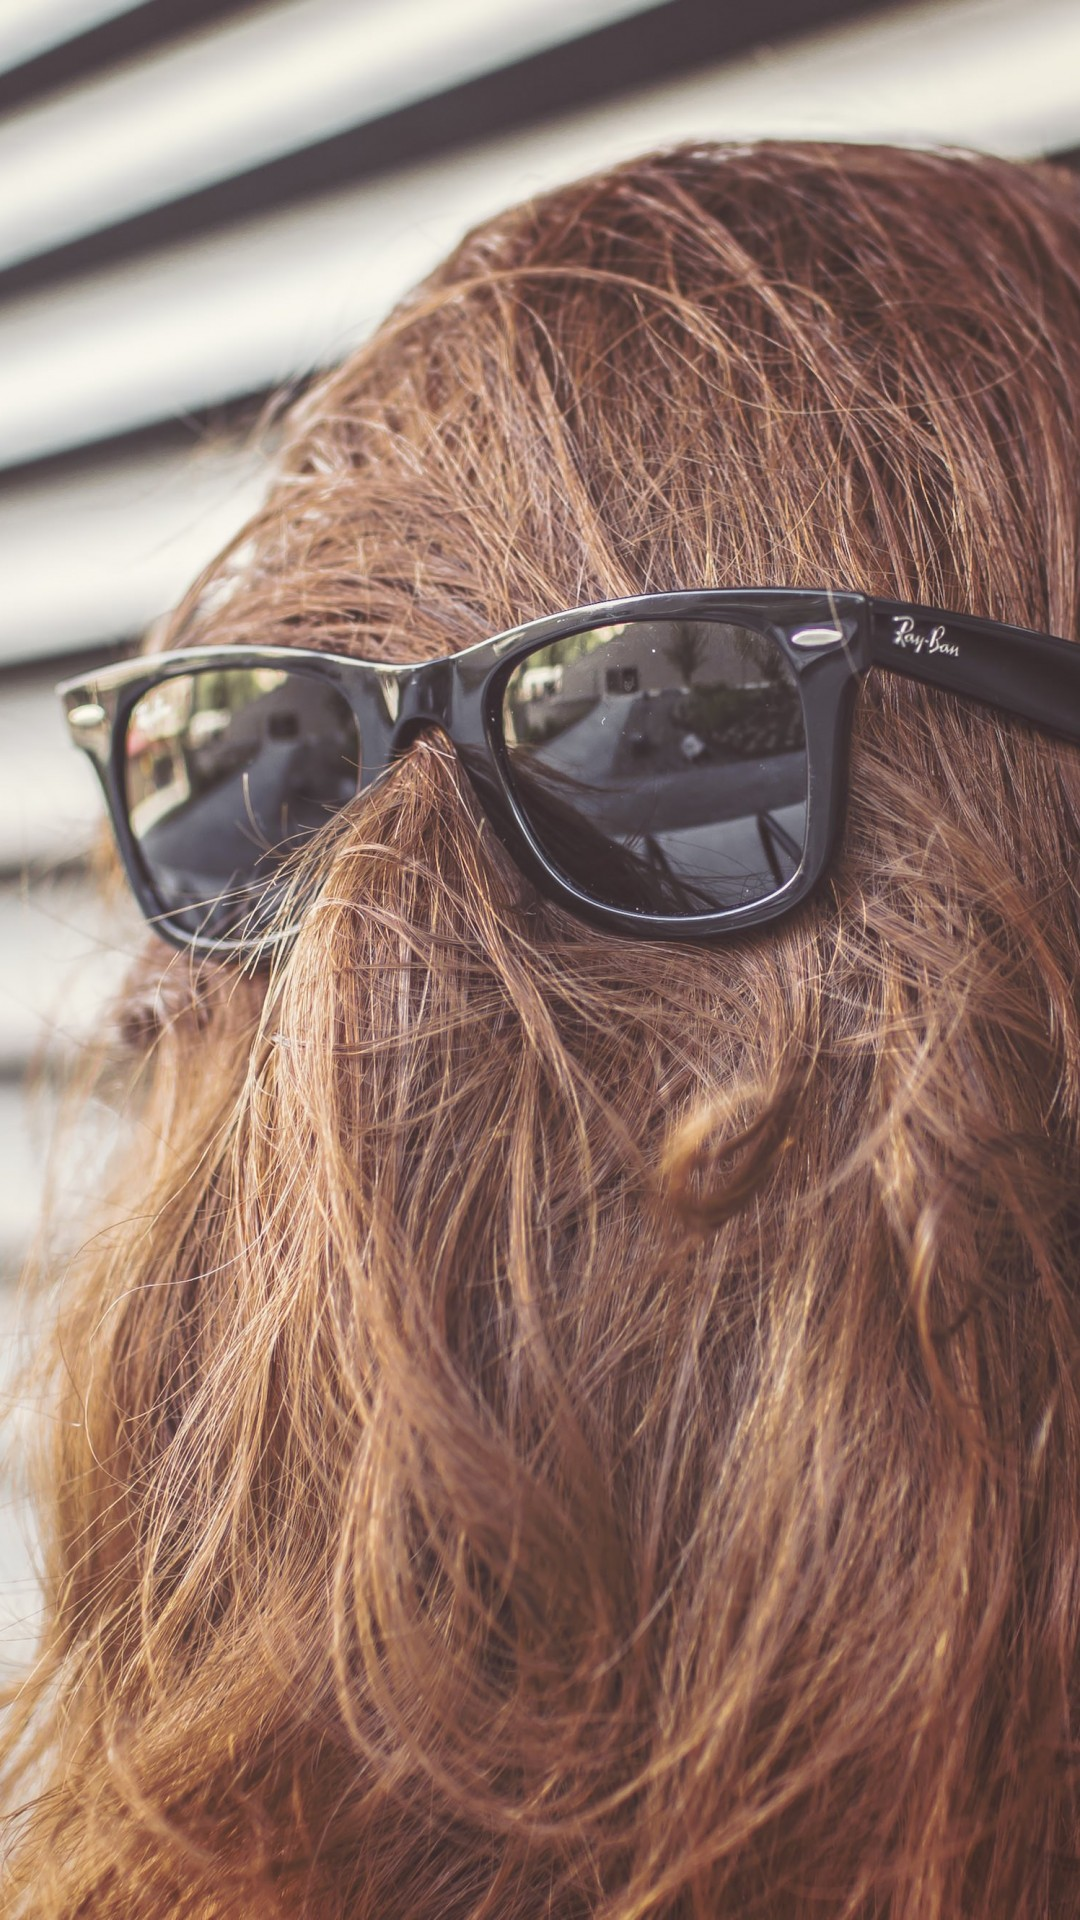 Chewbacca Girl Wallpaper for SAMSUNG Galaxy Note 3